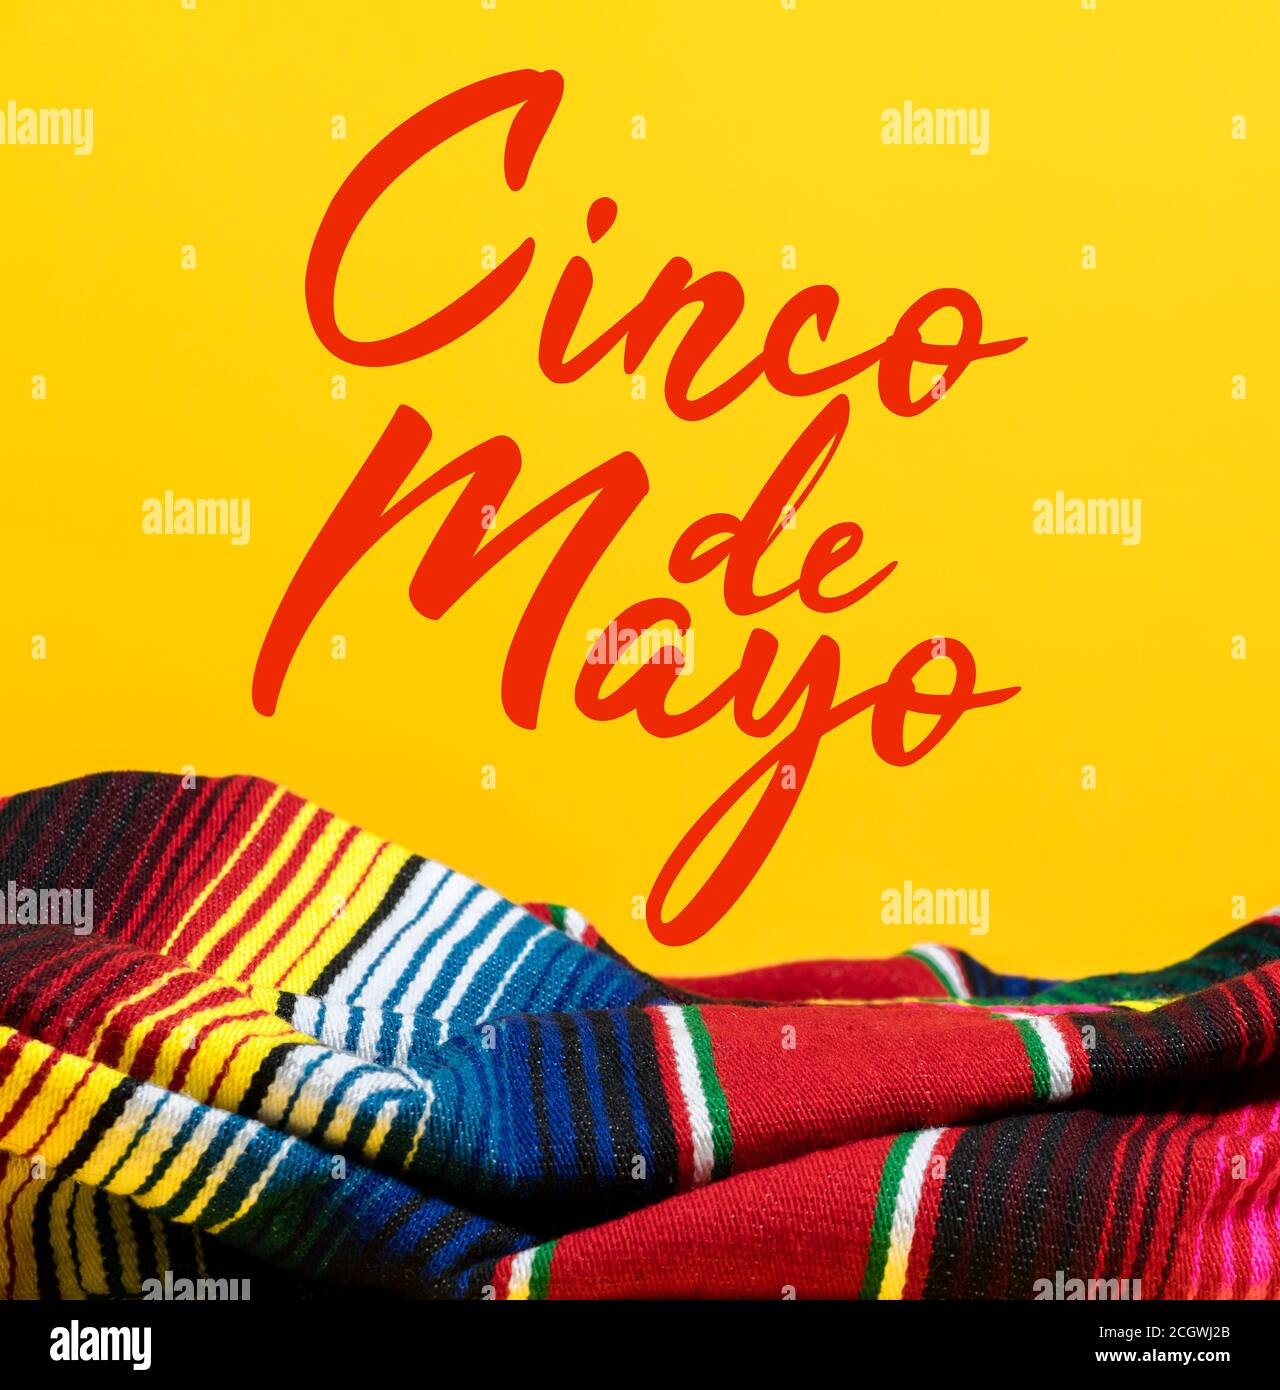 Mexican Serape blanket on yellow background with Cinco de Mayo.  Stock Photo